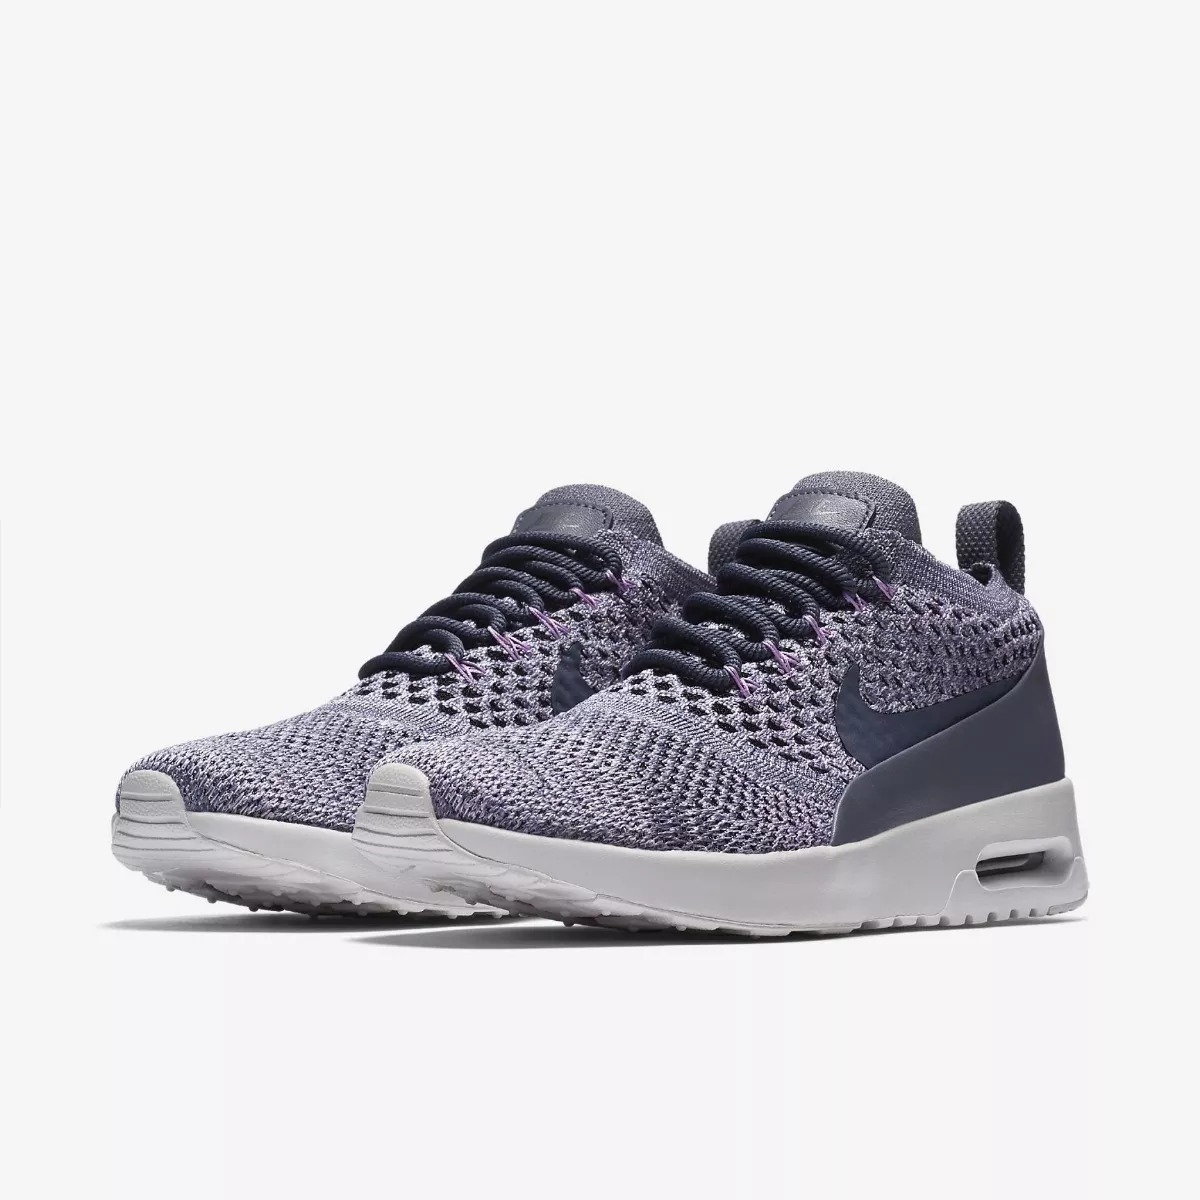 ... clearance zapatillas nike air max thea ultra flyknitmujerurbana b4960  579d4 purchase zapatillas nike air max 90 ultra 2.0 flyknit mujer 881109 ... a53afb39b91ae